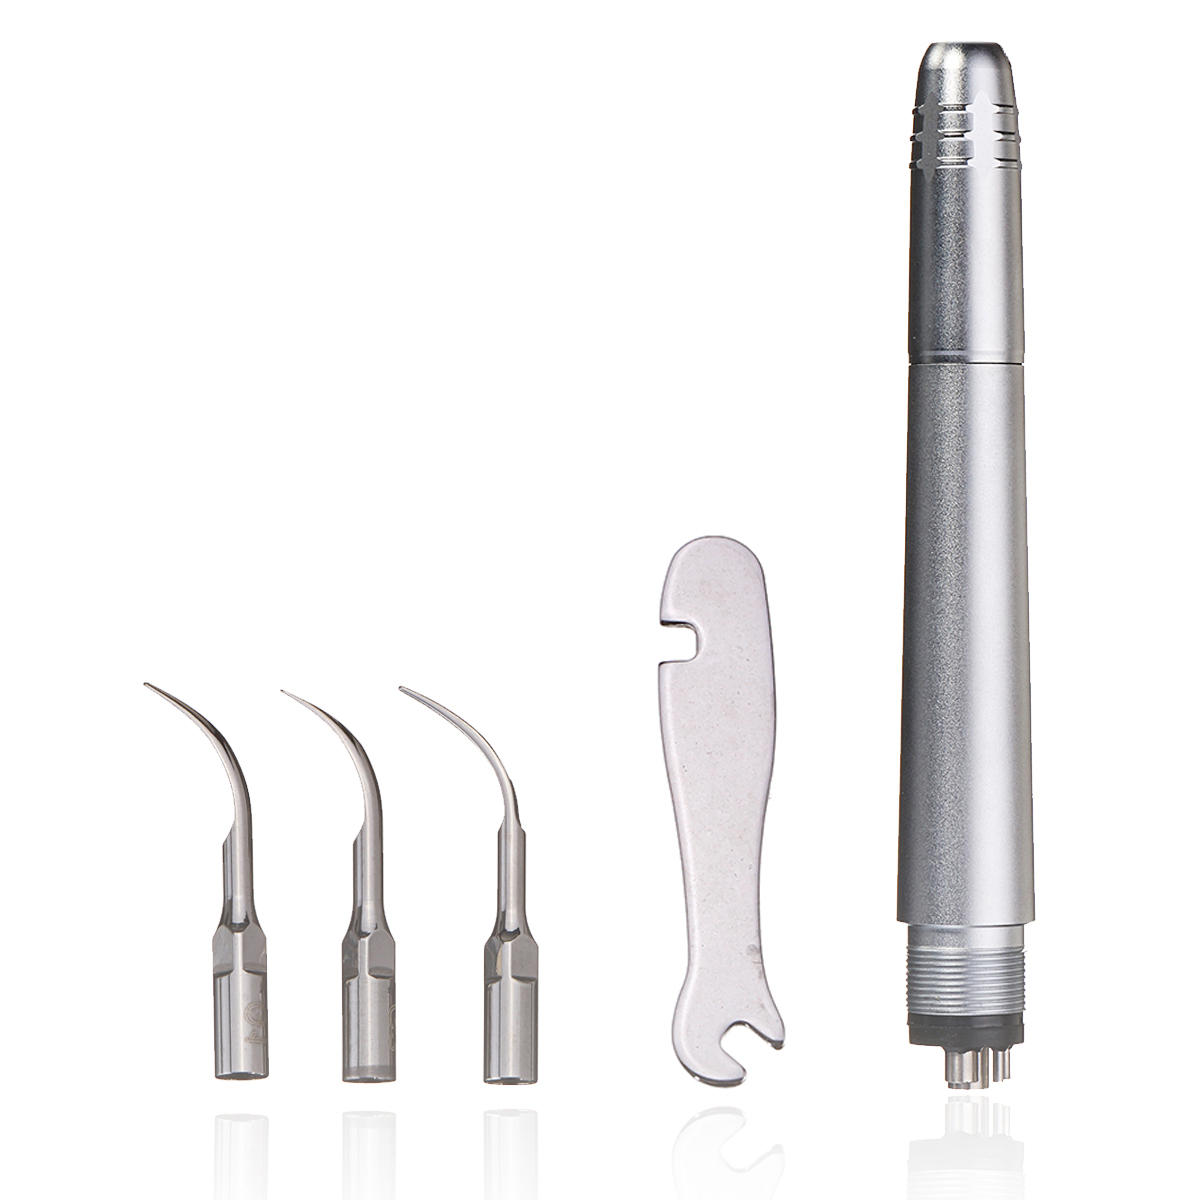 4 Holes Dental Ultrasonic Periodontal Air Scaler Kits with 3 Compatible Tips Teeth Cleaners Tools